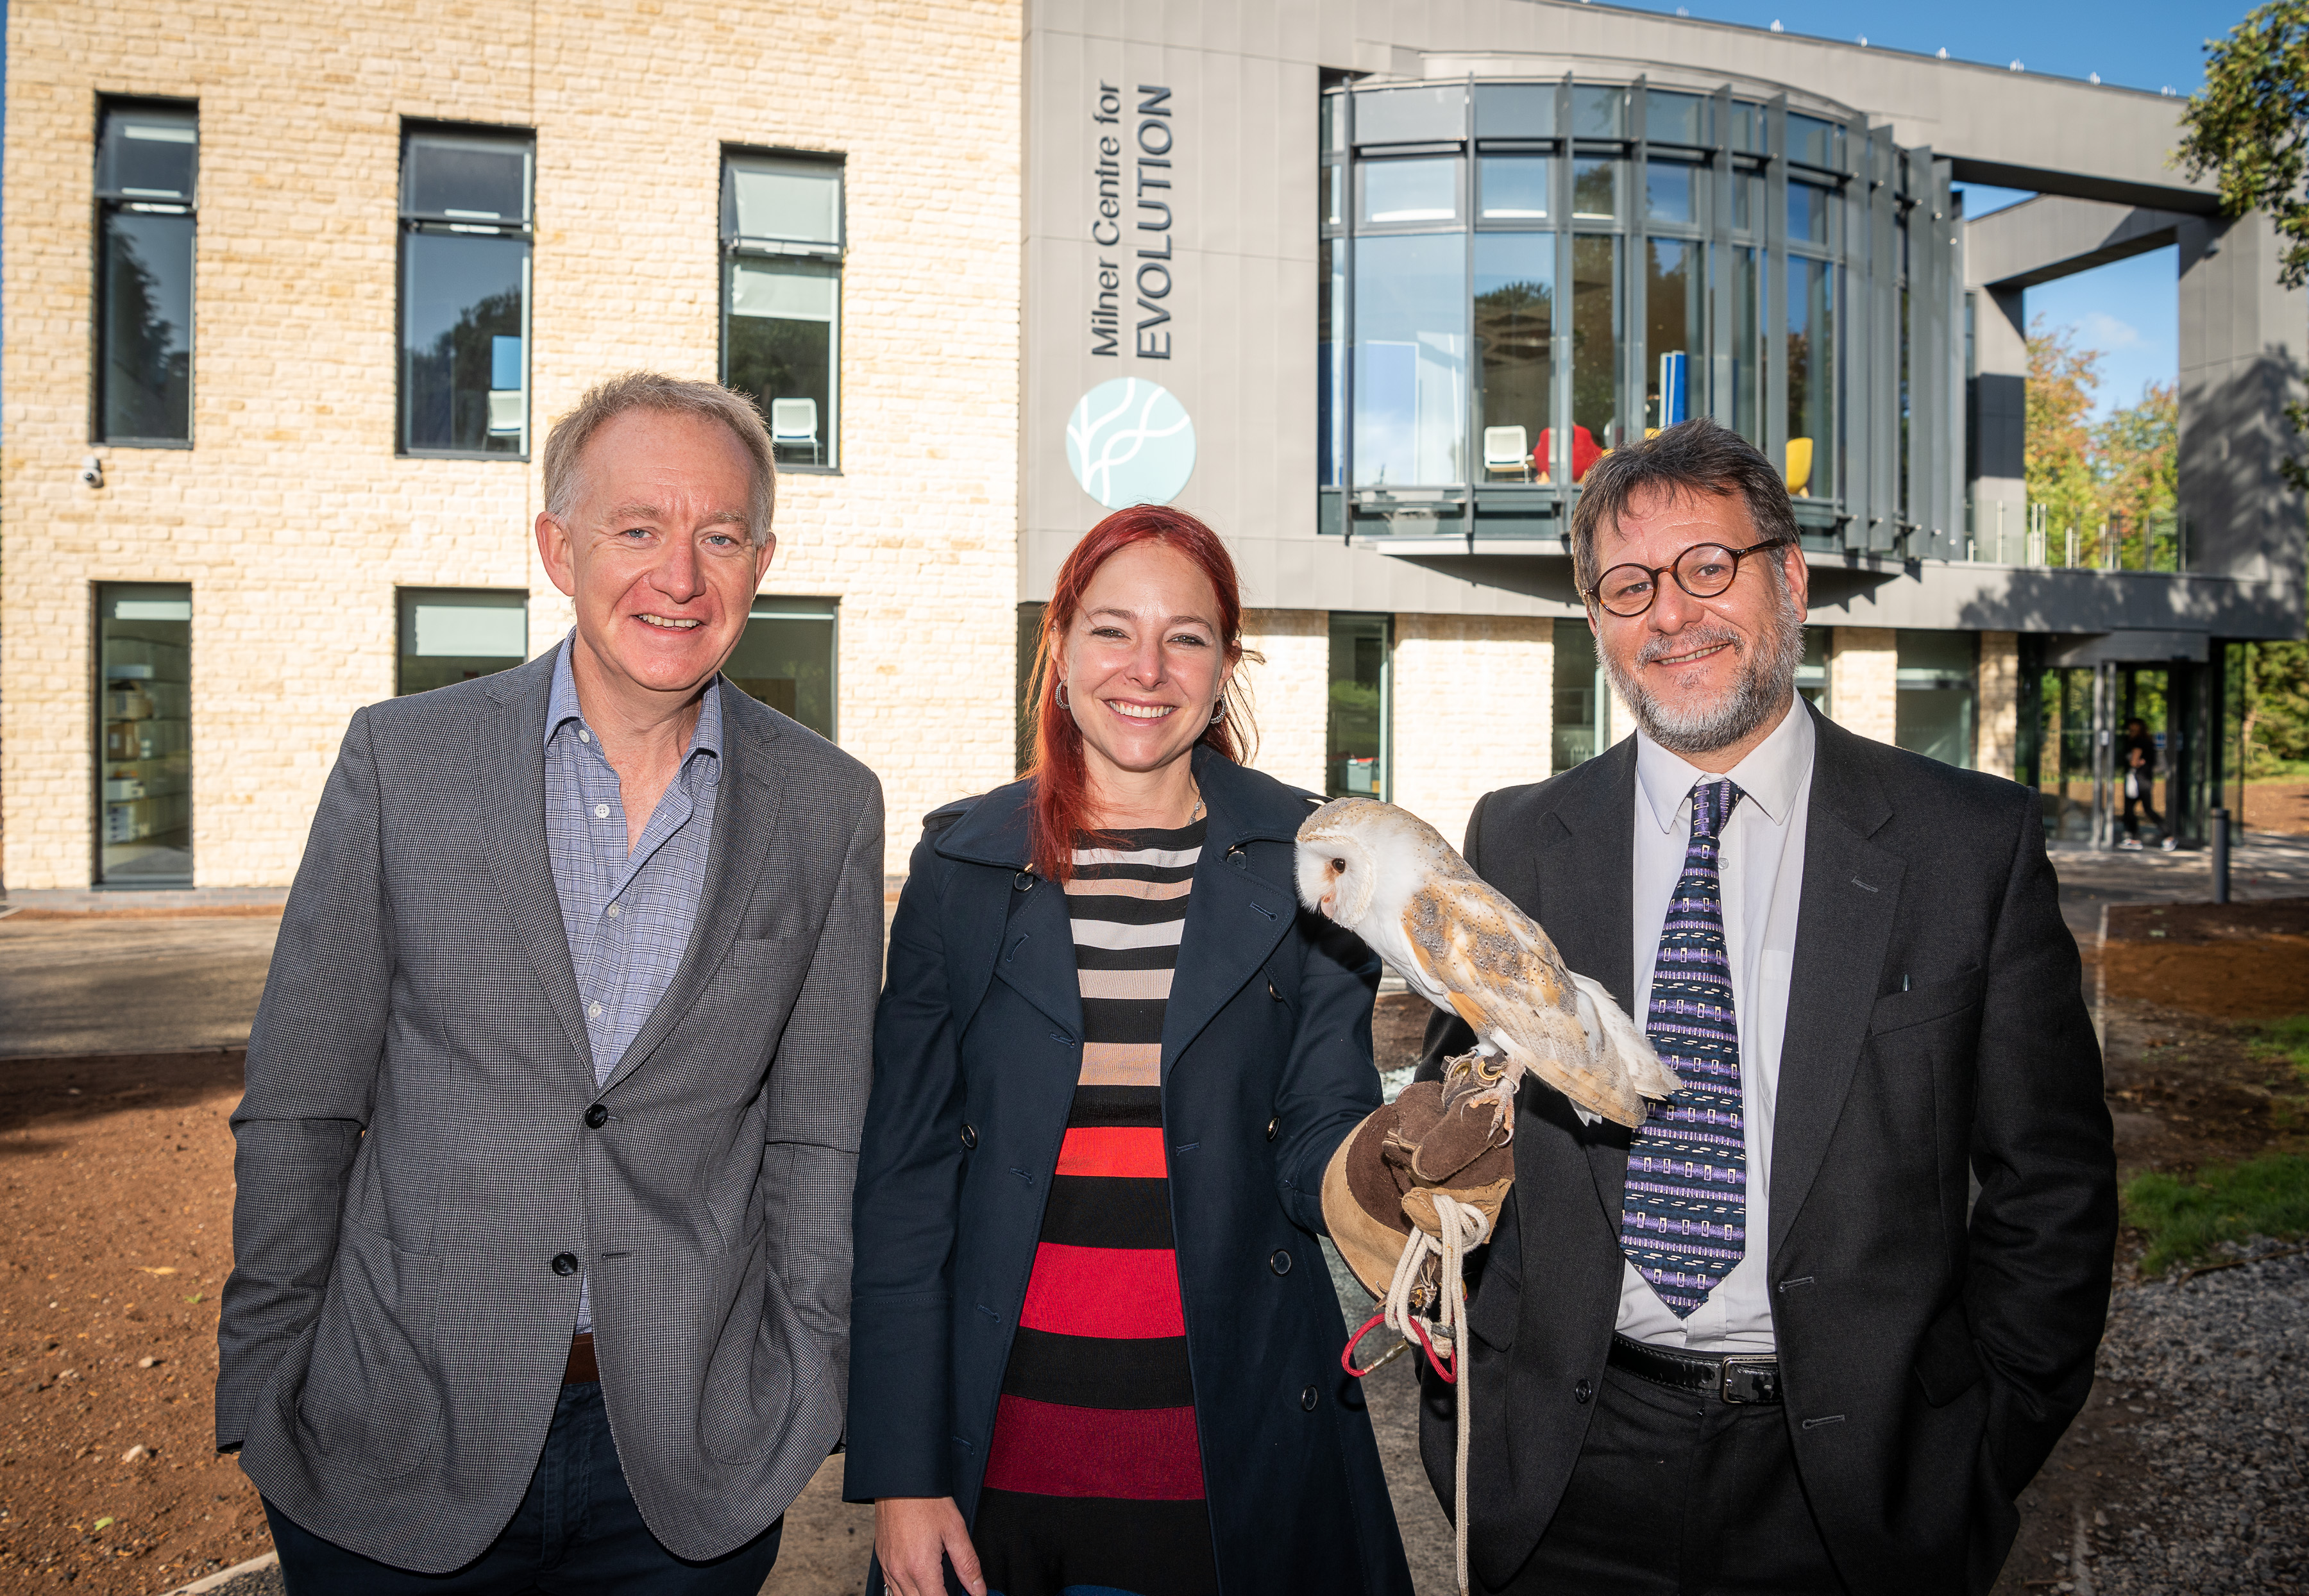 Dr Jonathan Milner with Professors Alice Roberts and Matthew Wills and Loki the owl